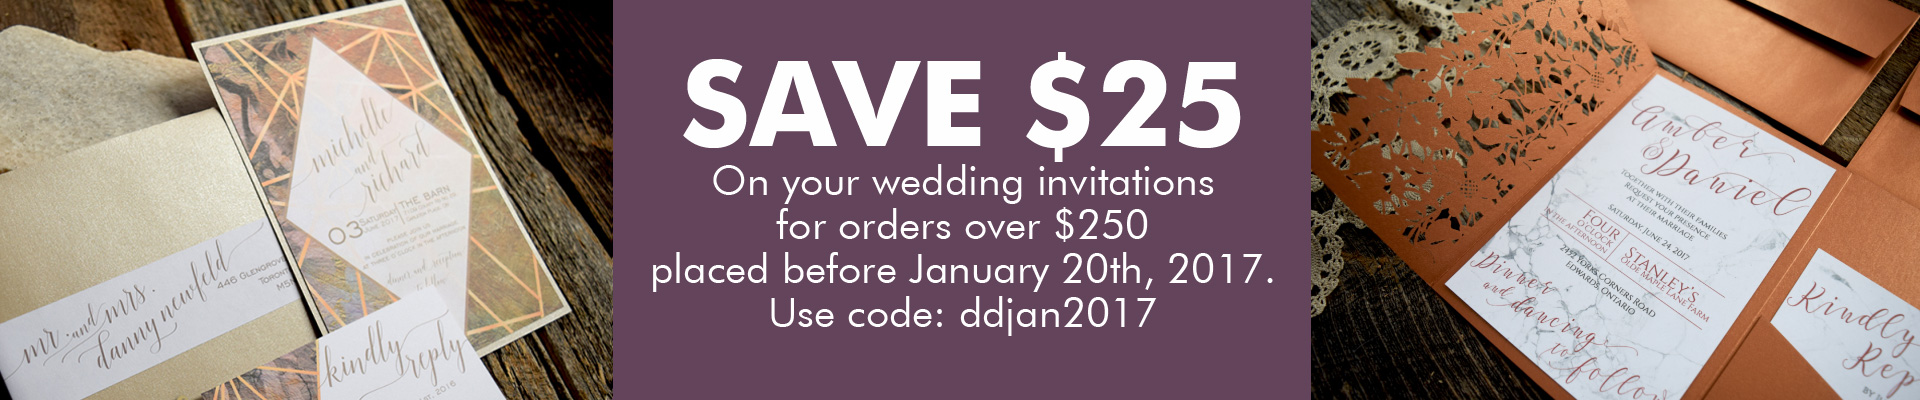 image- Save $25 On your wedding invitations for orders over $250 placed before January 20th, 2017 - use code: ddjan2017